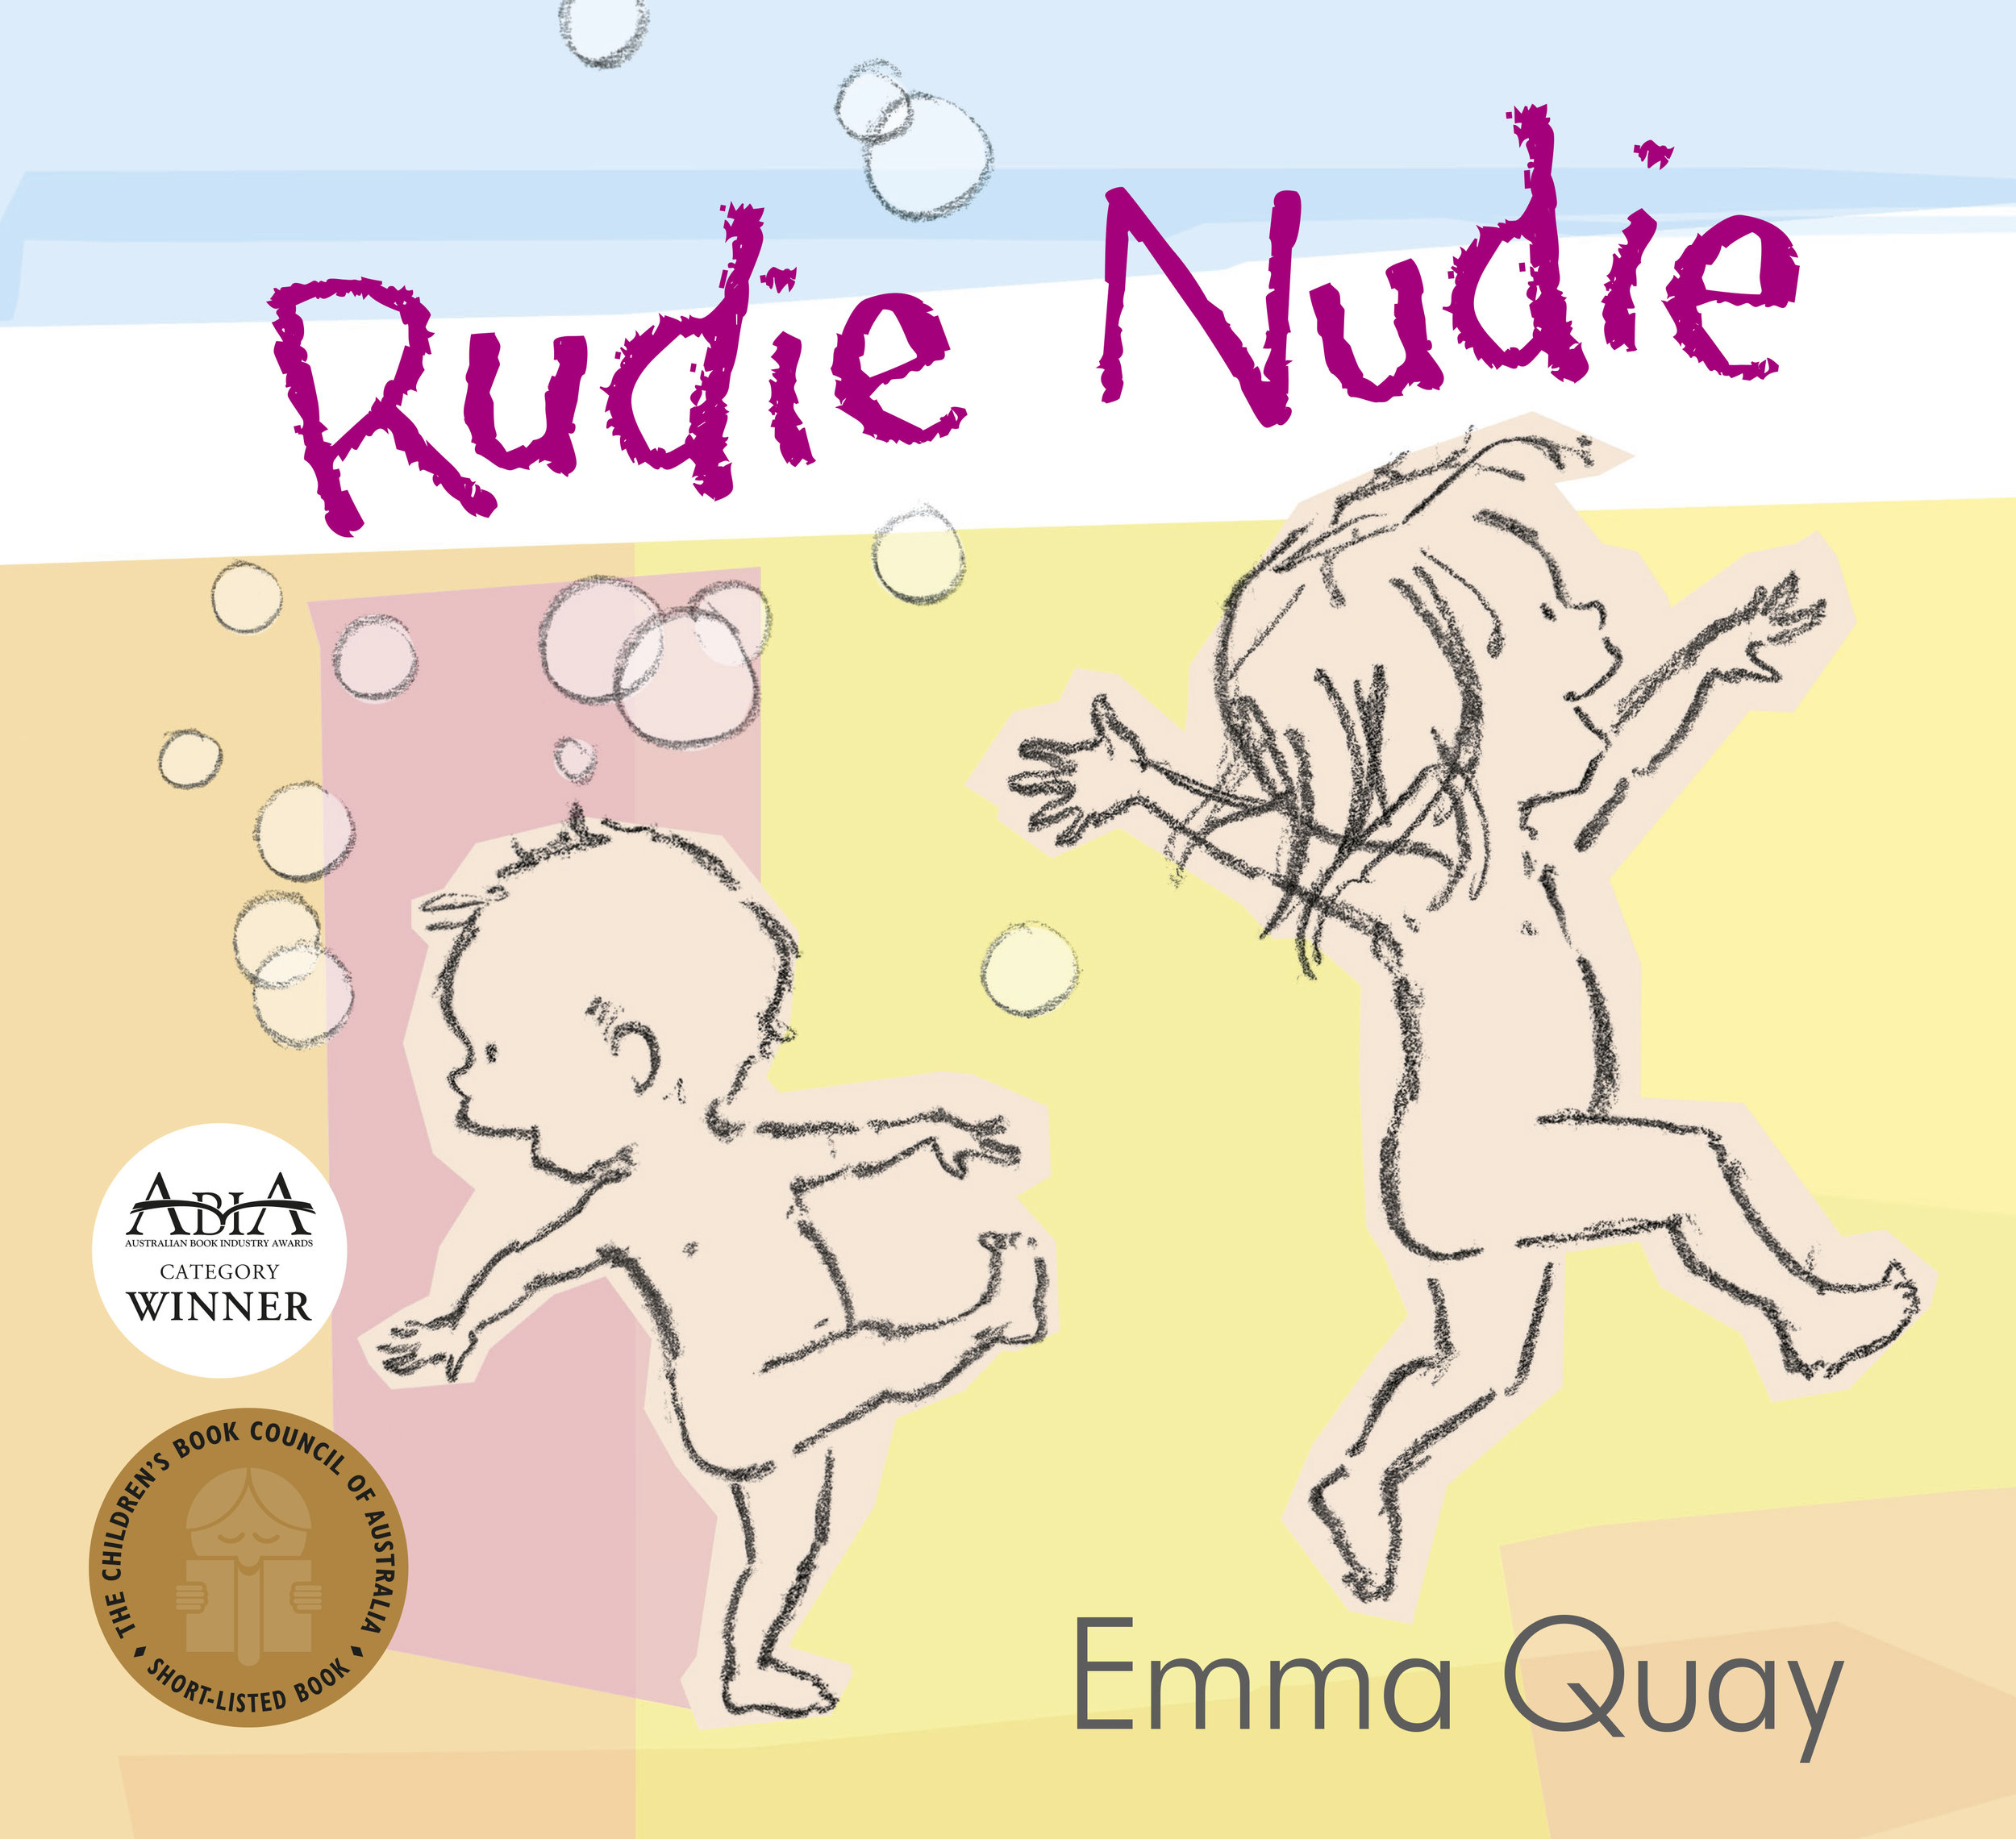 RUDIE NUDIE by Emma Quay (ABC Books) - www.emmaquay.com